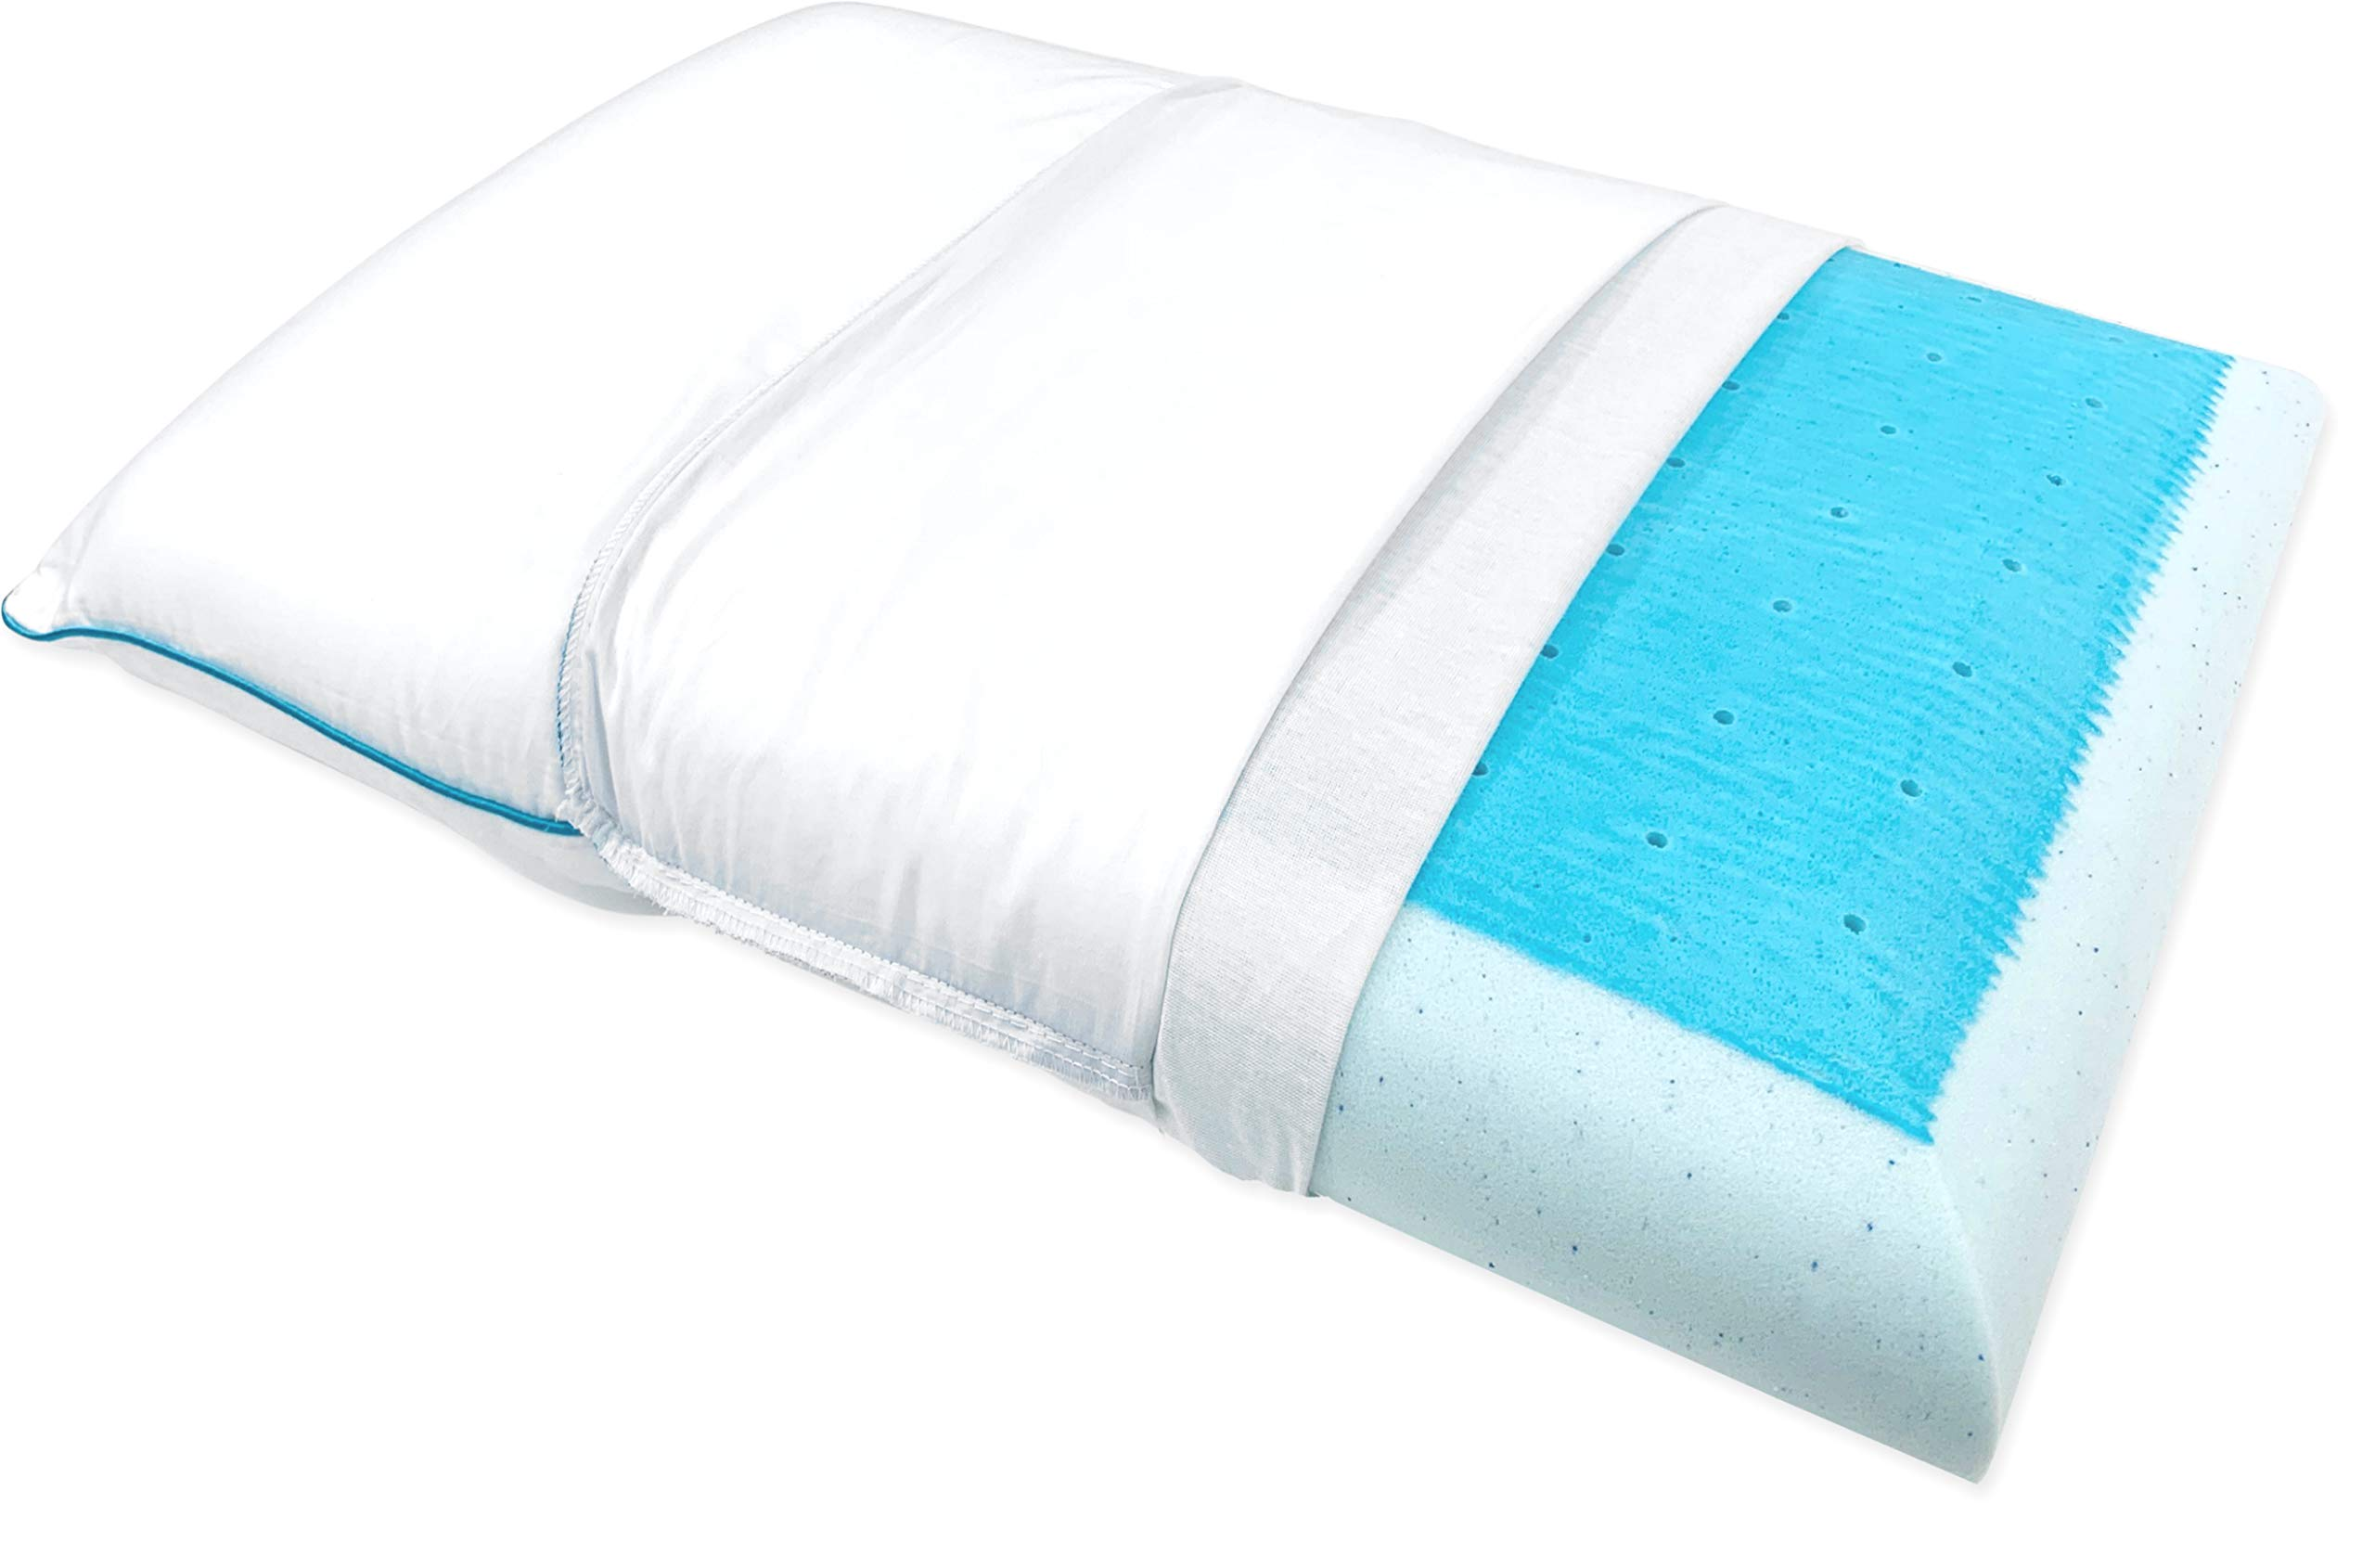 Bluewave Bedding Super Slim Max Cool Gel Memory Foam Pillow for Stomach and Back Sleepers - Thin and Flat Therapeutic Design for Spinal Alignment, Better Breathing and Enhanced Sleeping